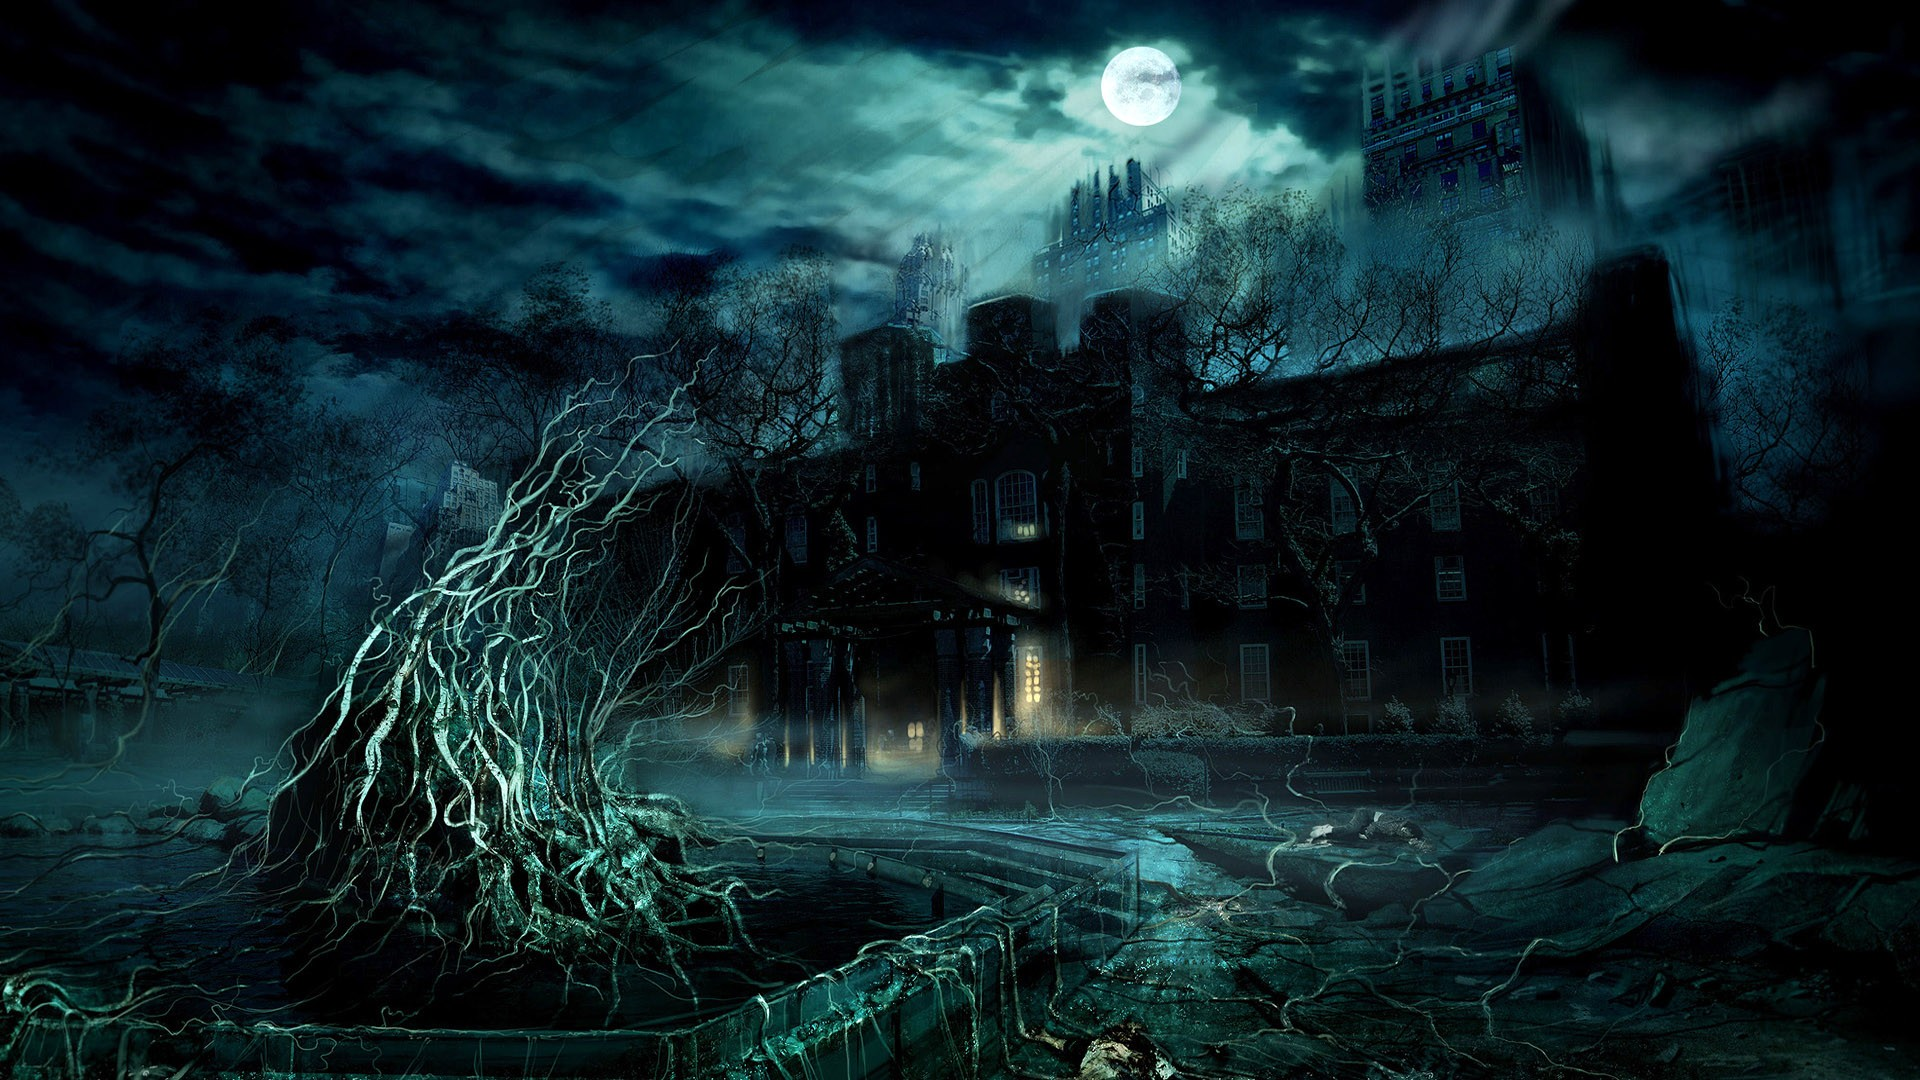 1920x1080 - Cool Gothic Backgrounds 44